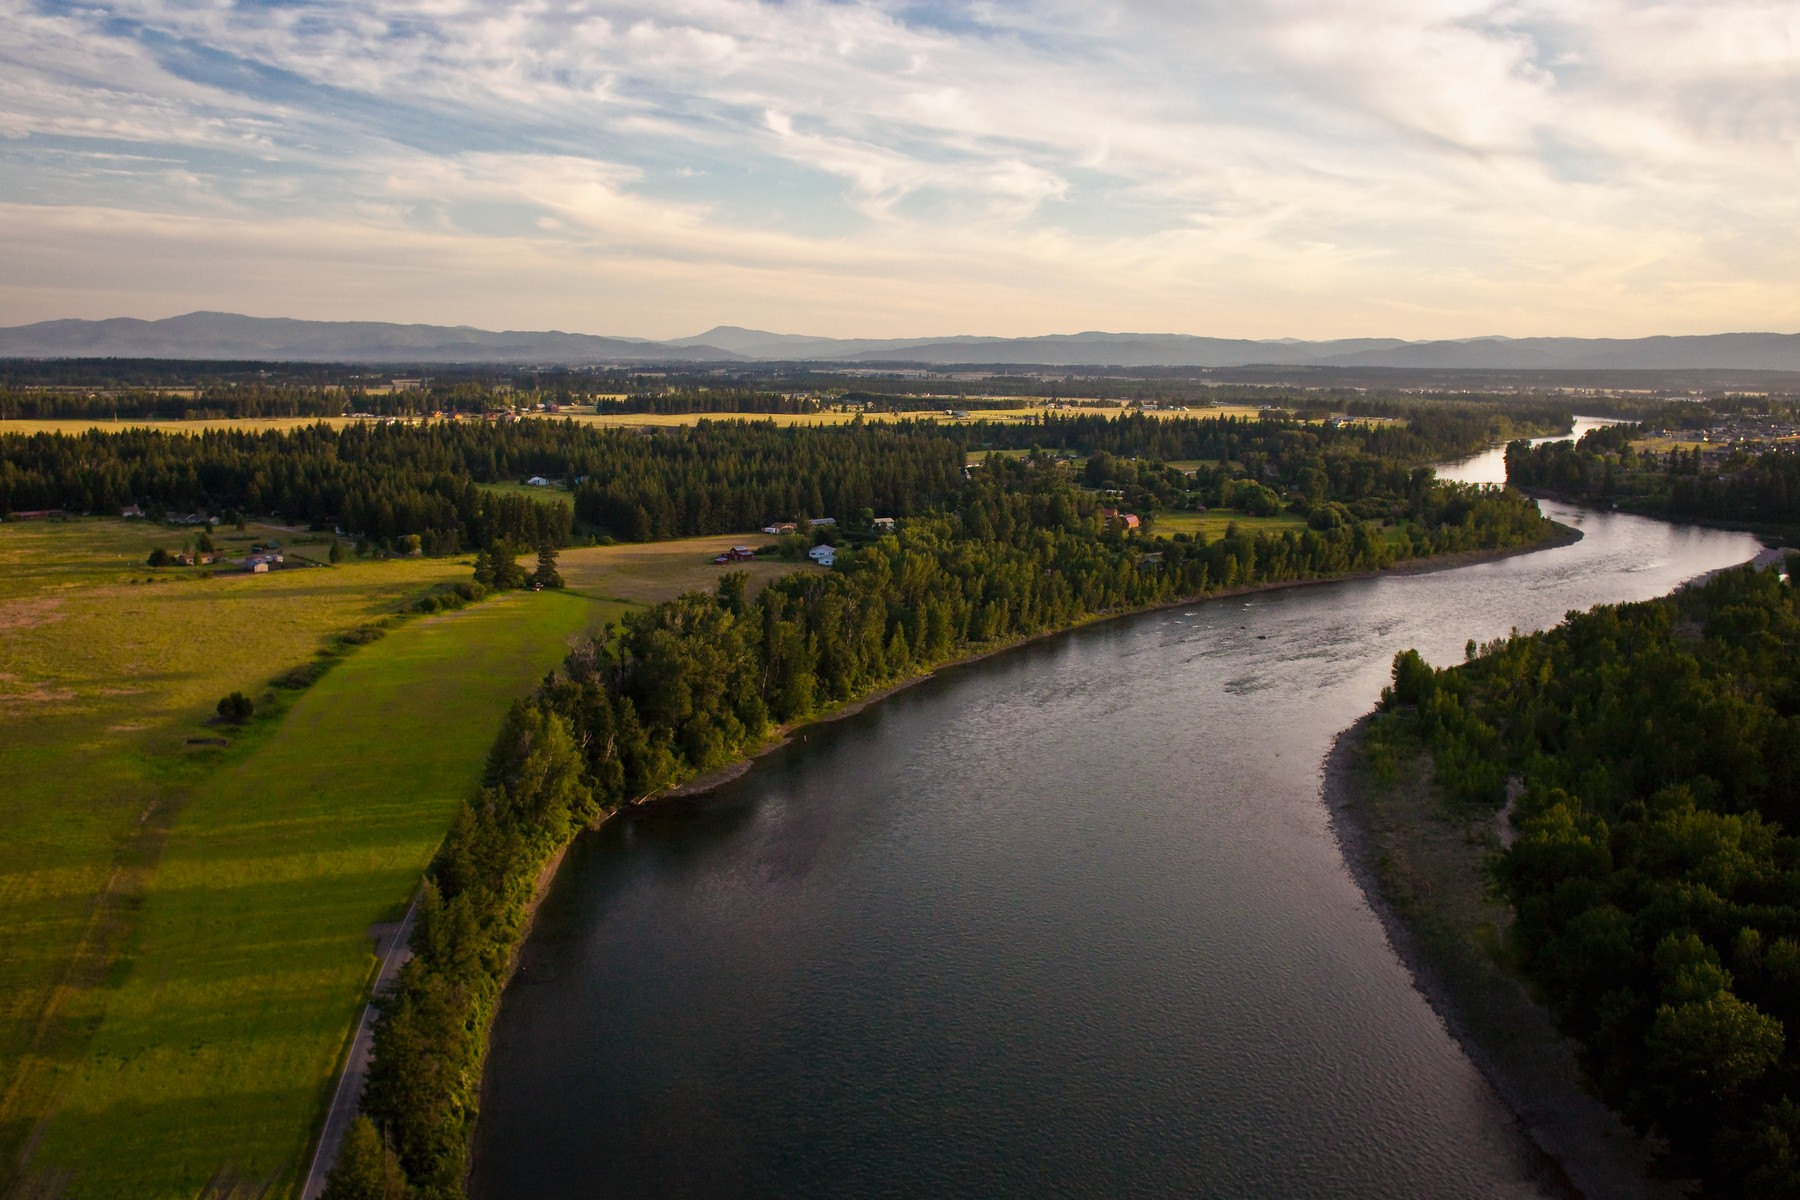 Land for Sale at Flathead River Acerage 264-494 River Rd Columbia Falls, Montana, 59912 United States